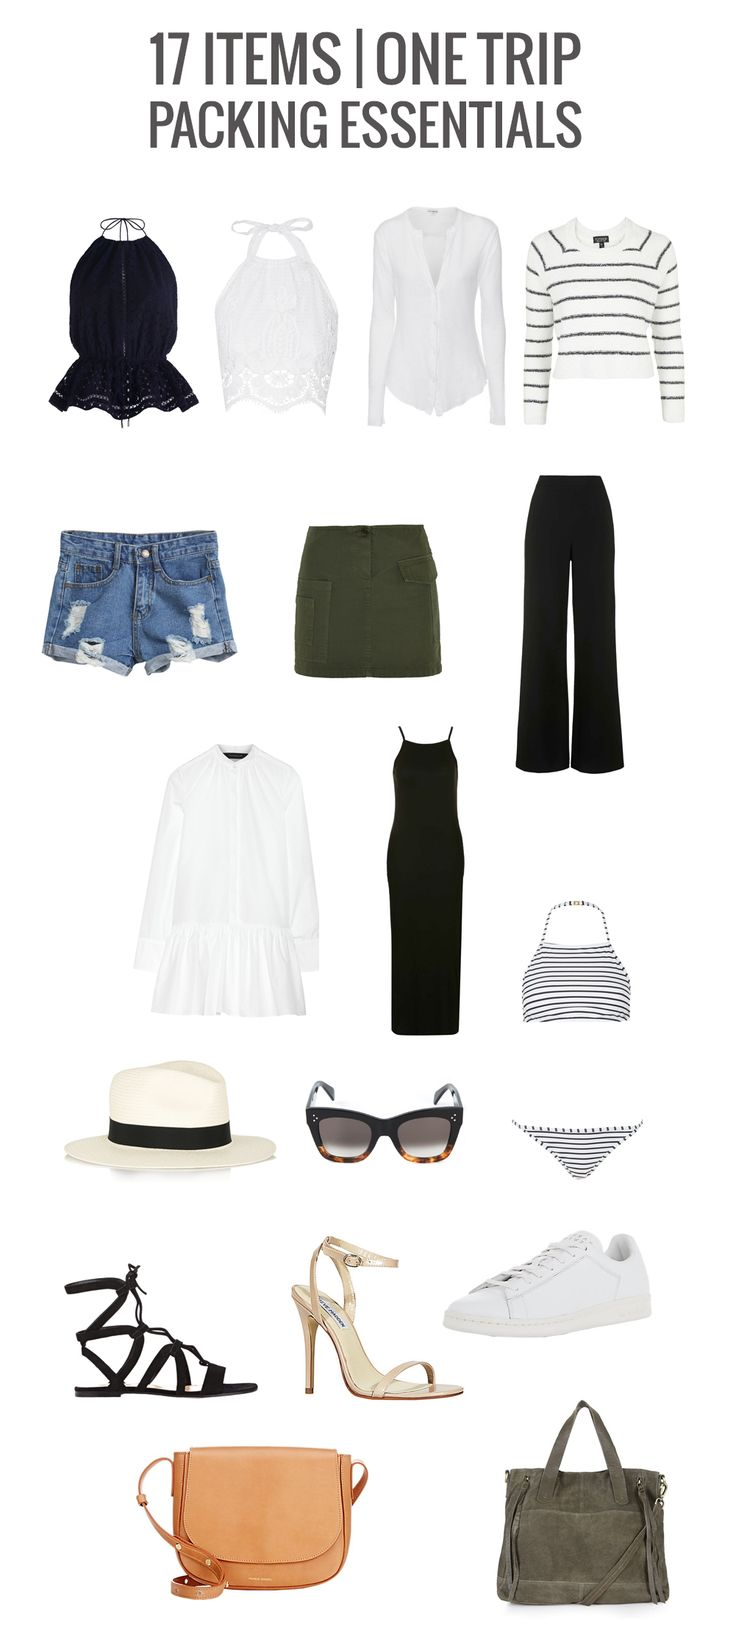 WHAT TO PACK FOR VACATION  TRAVEL PACKING LIST TO TRAVEL LIGHT, ON TREND WITH 17 PIECES  MARIANNA HEWITT FASHION BLOG SUMMER VACATION